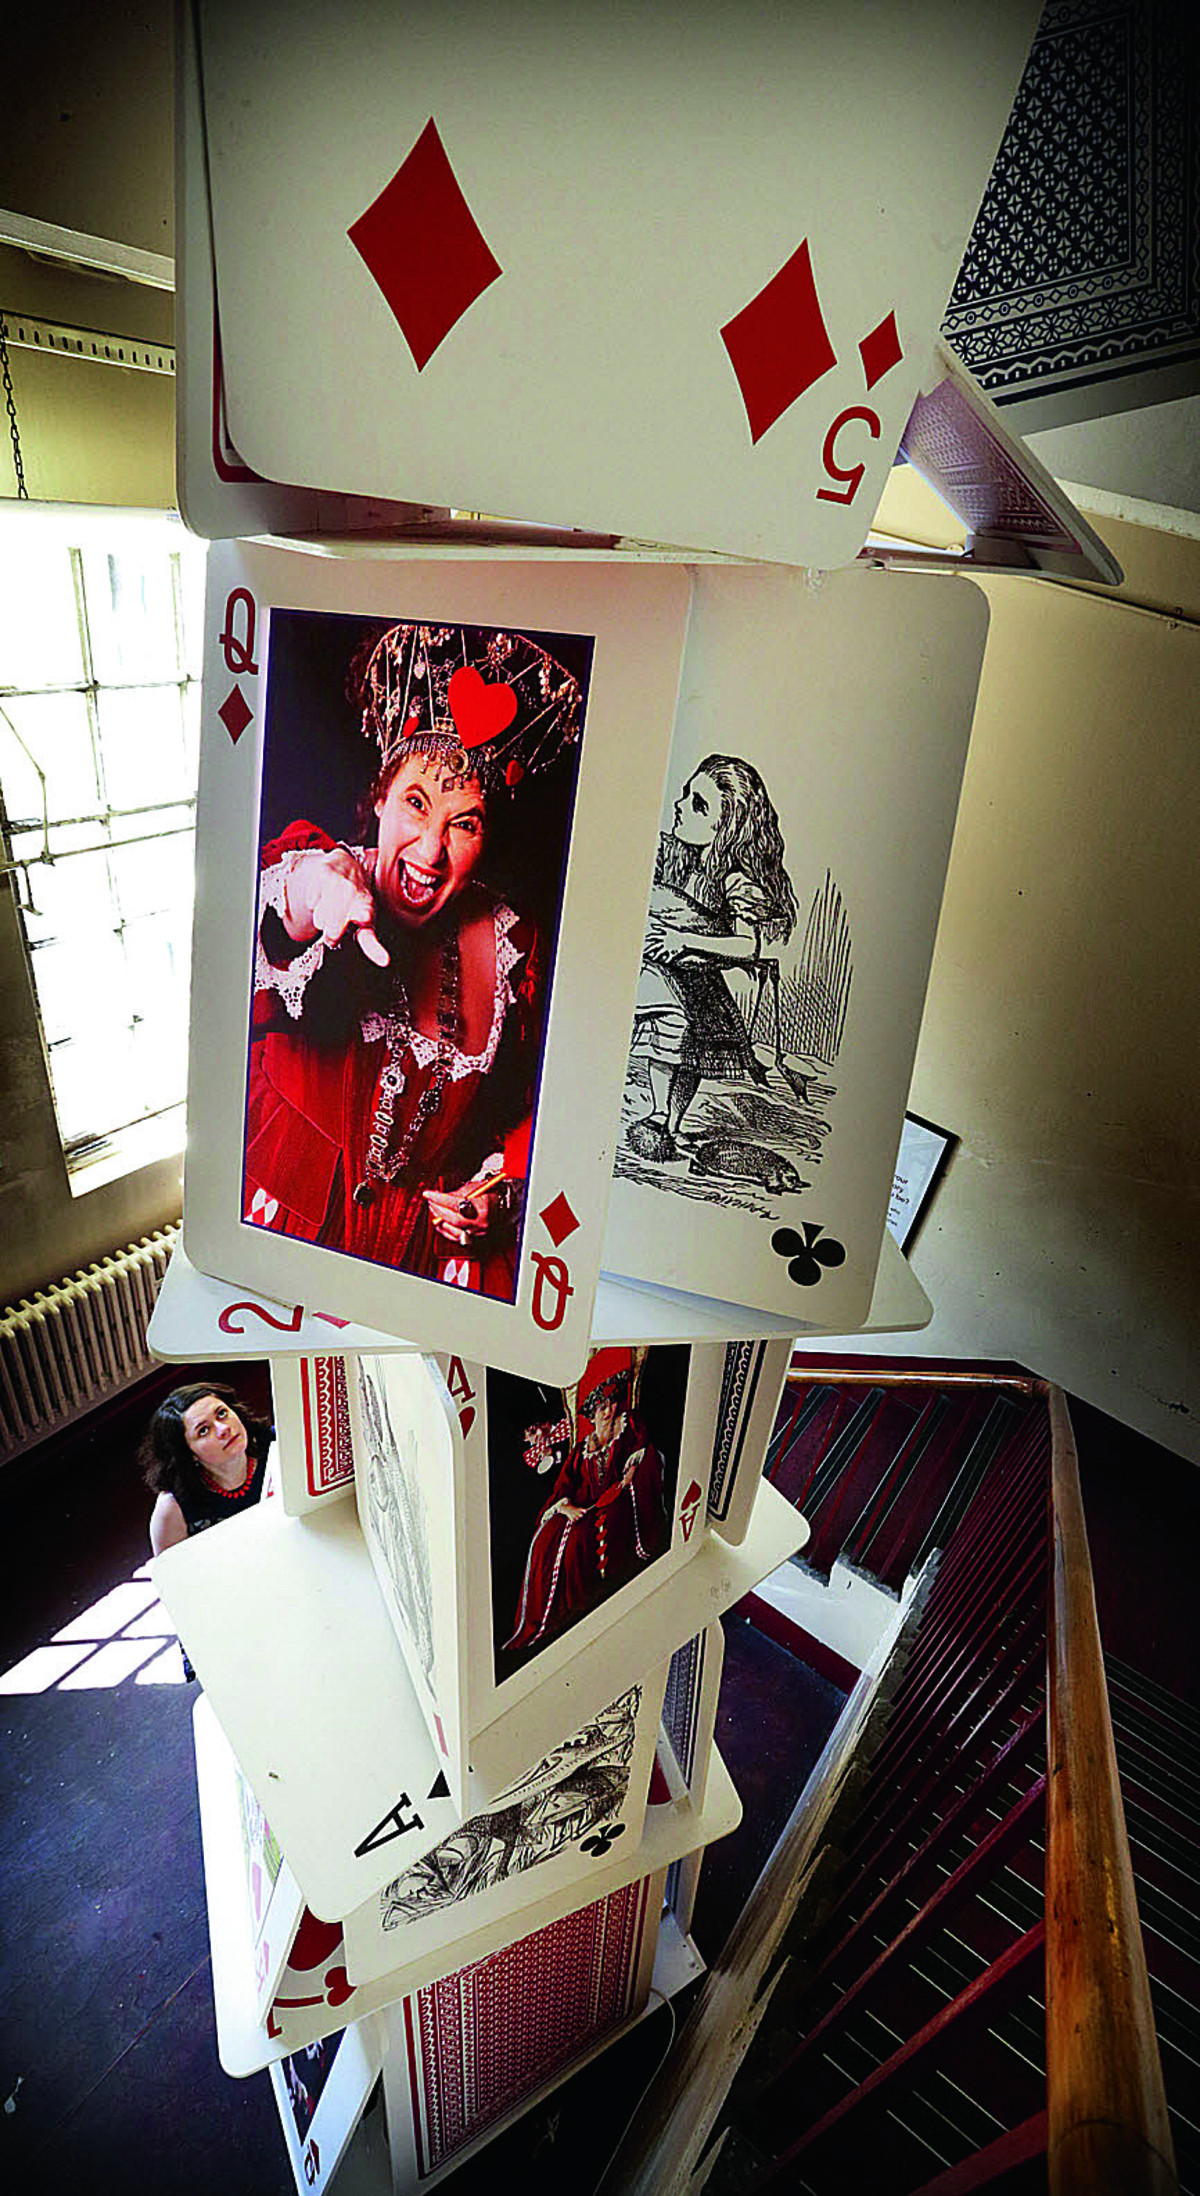 Alex Coke, of the Story Museum, looks up at a tower of cards depicting Horrid Henry author Francesca Simon playing the Queen of Hearts             Picture: OX67904 Damian Halliwell